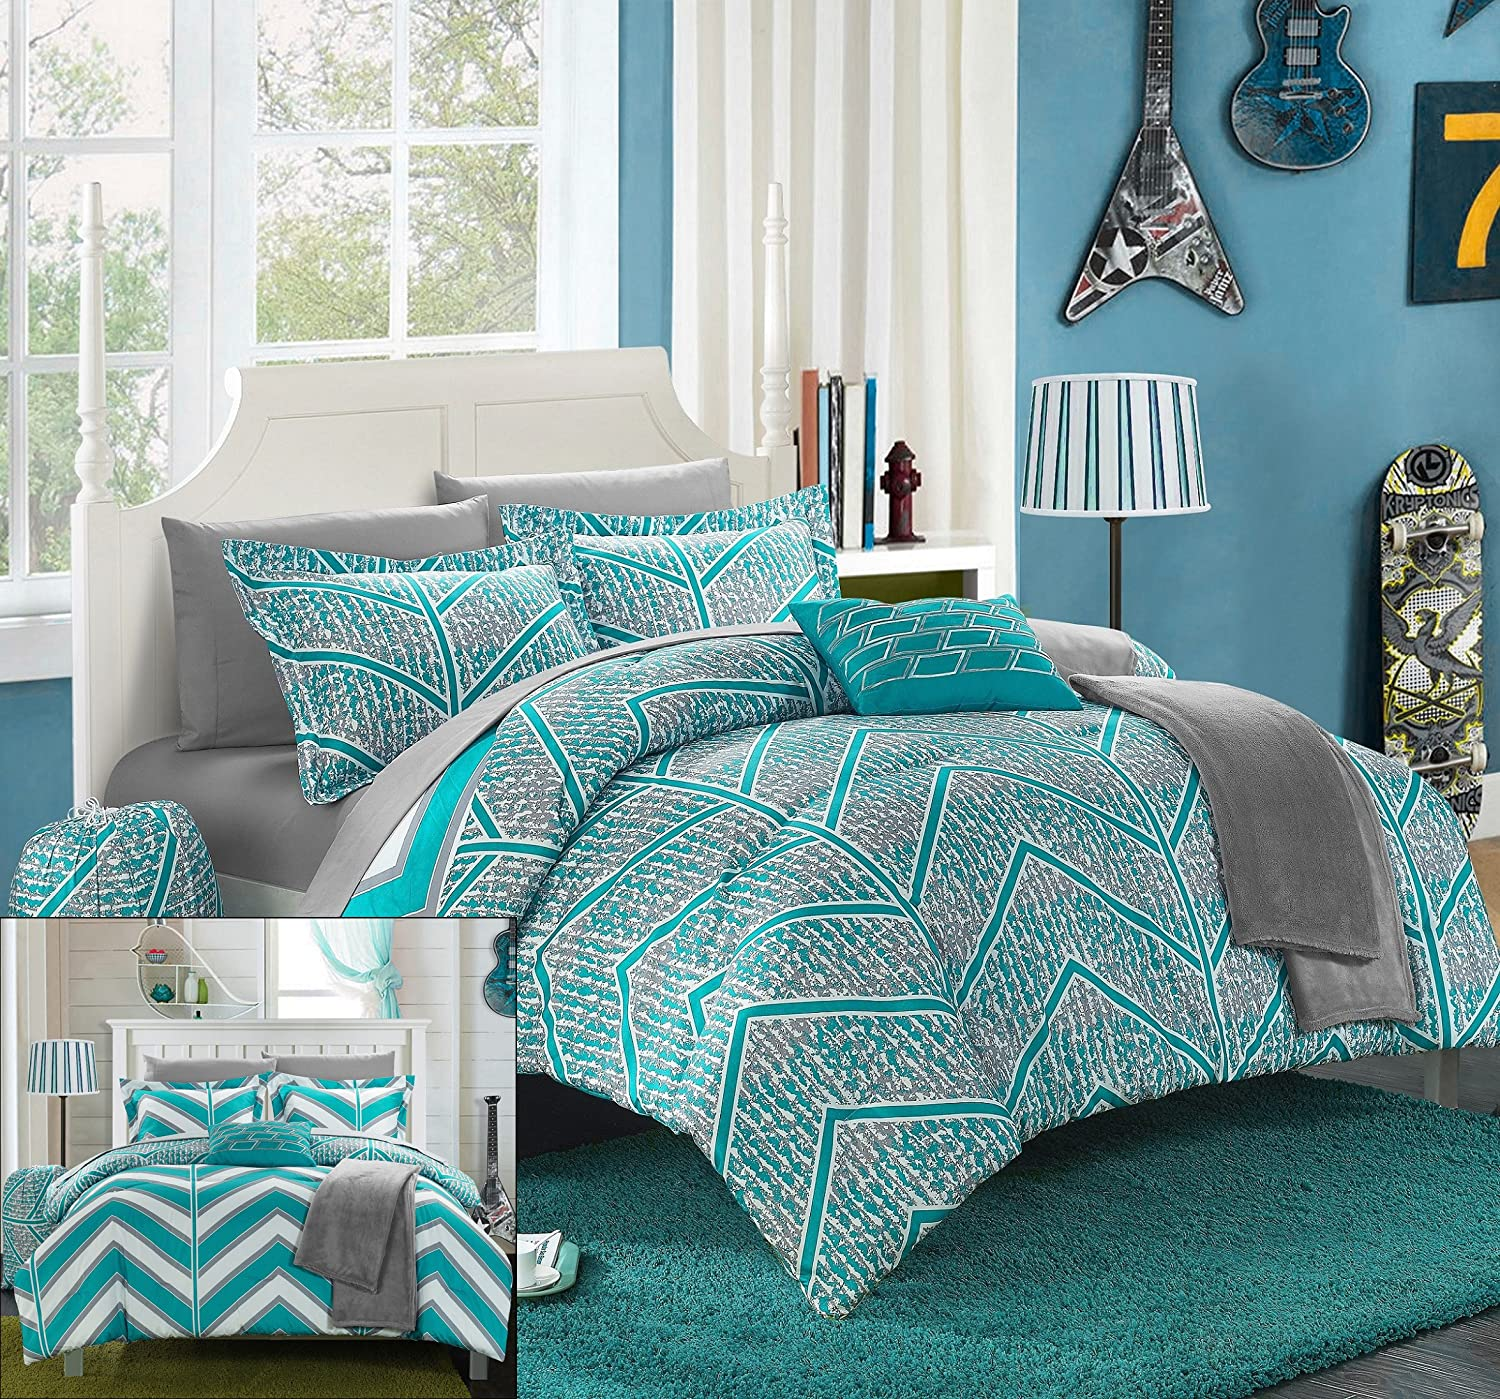 Duvet Covers Teal And Gray